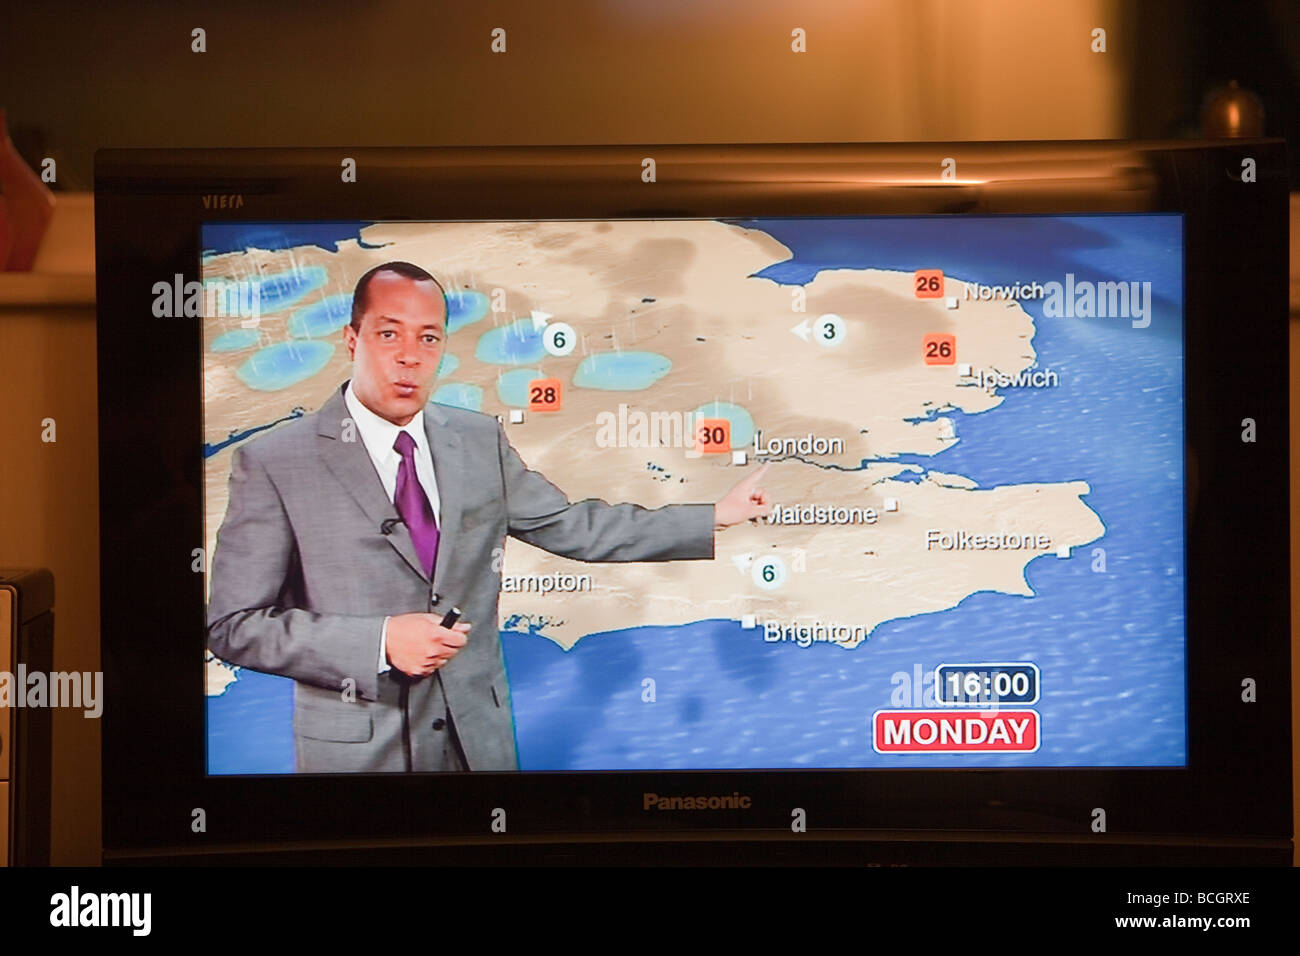 A TV weather forecast forecasting a heat wave in the UK - Stock Image